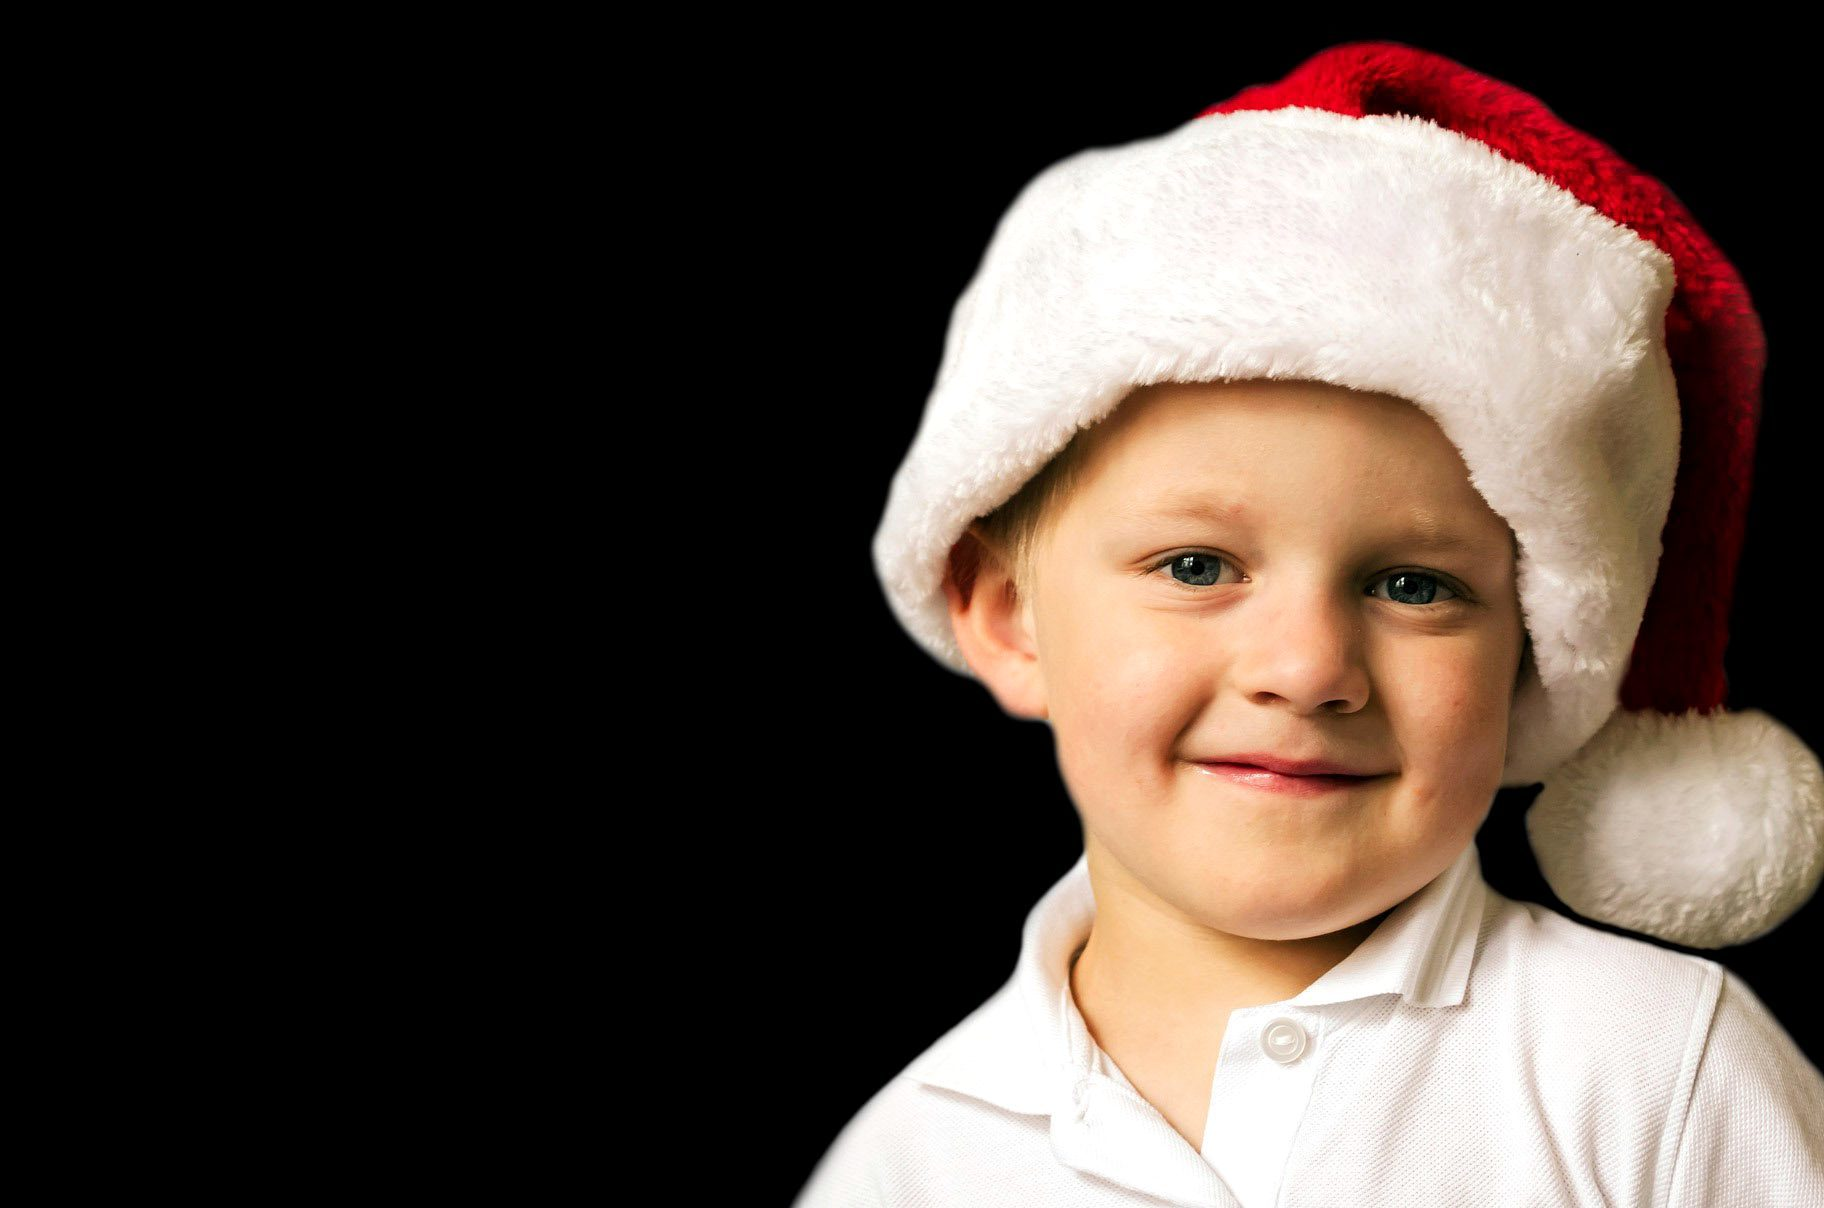 Free picture young child Christmas Santa Claus hat